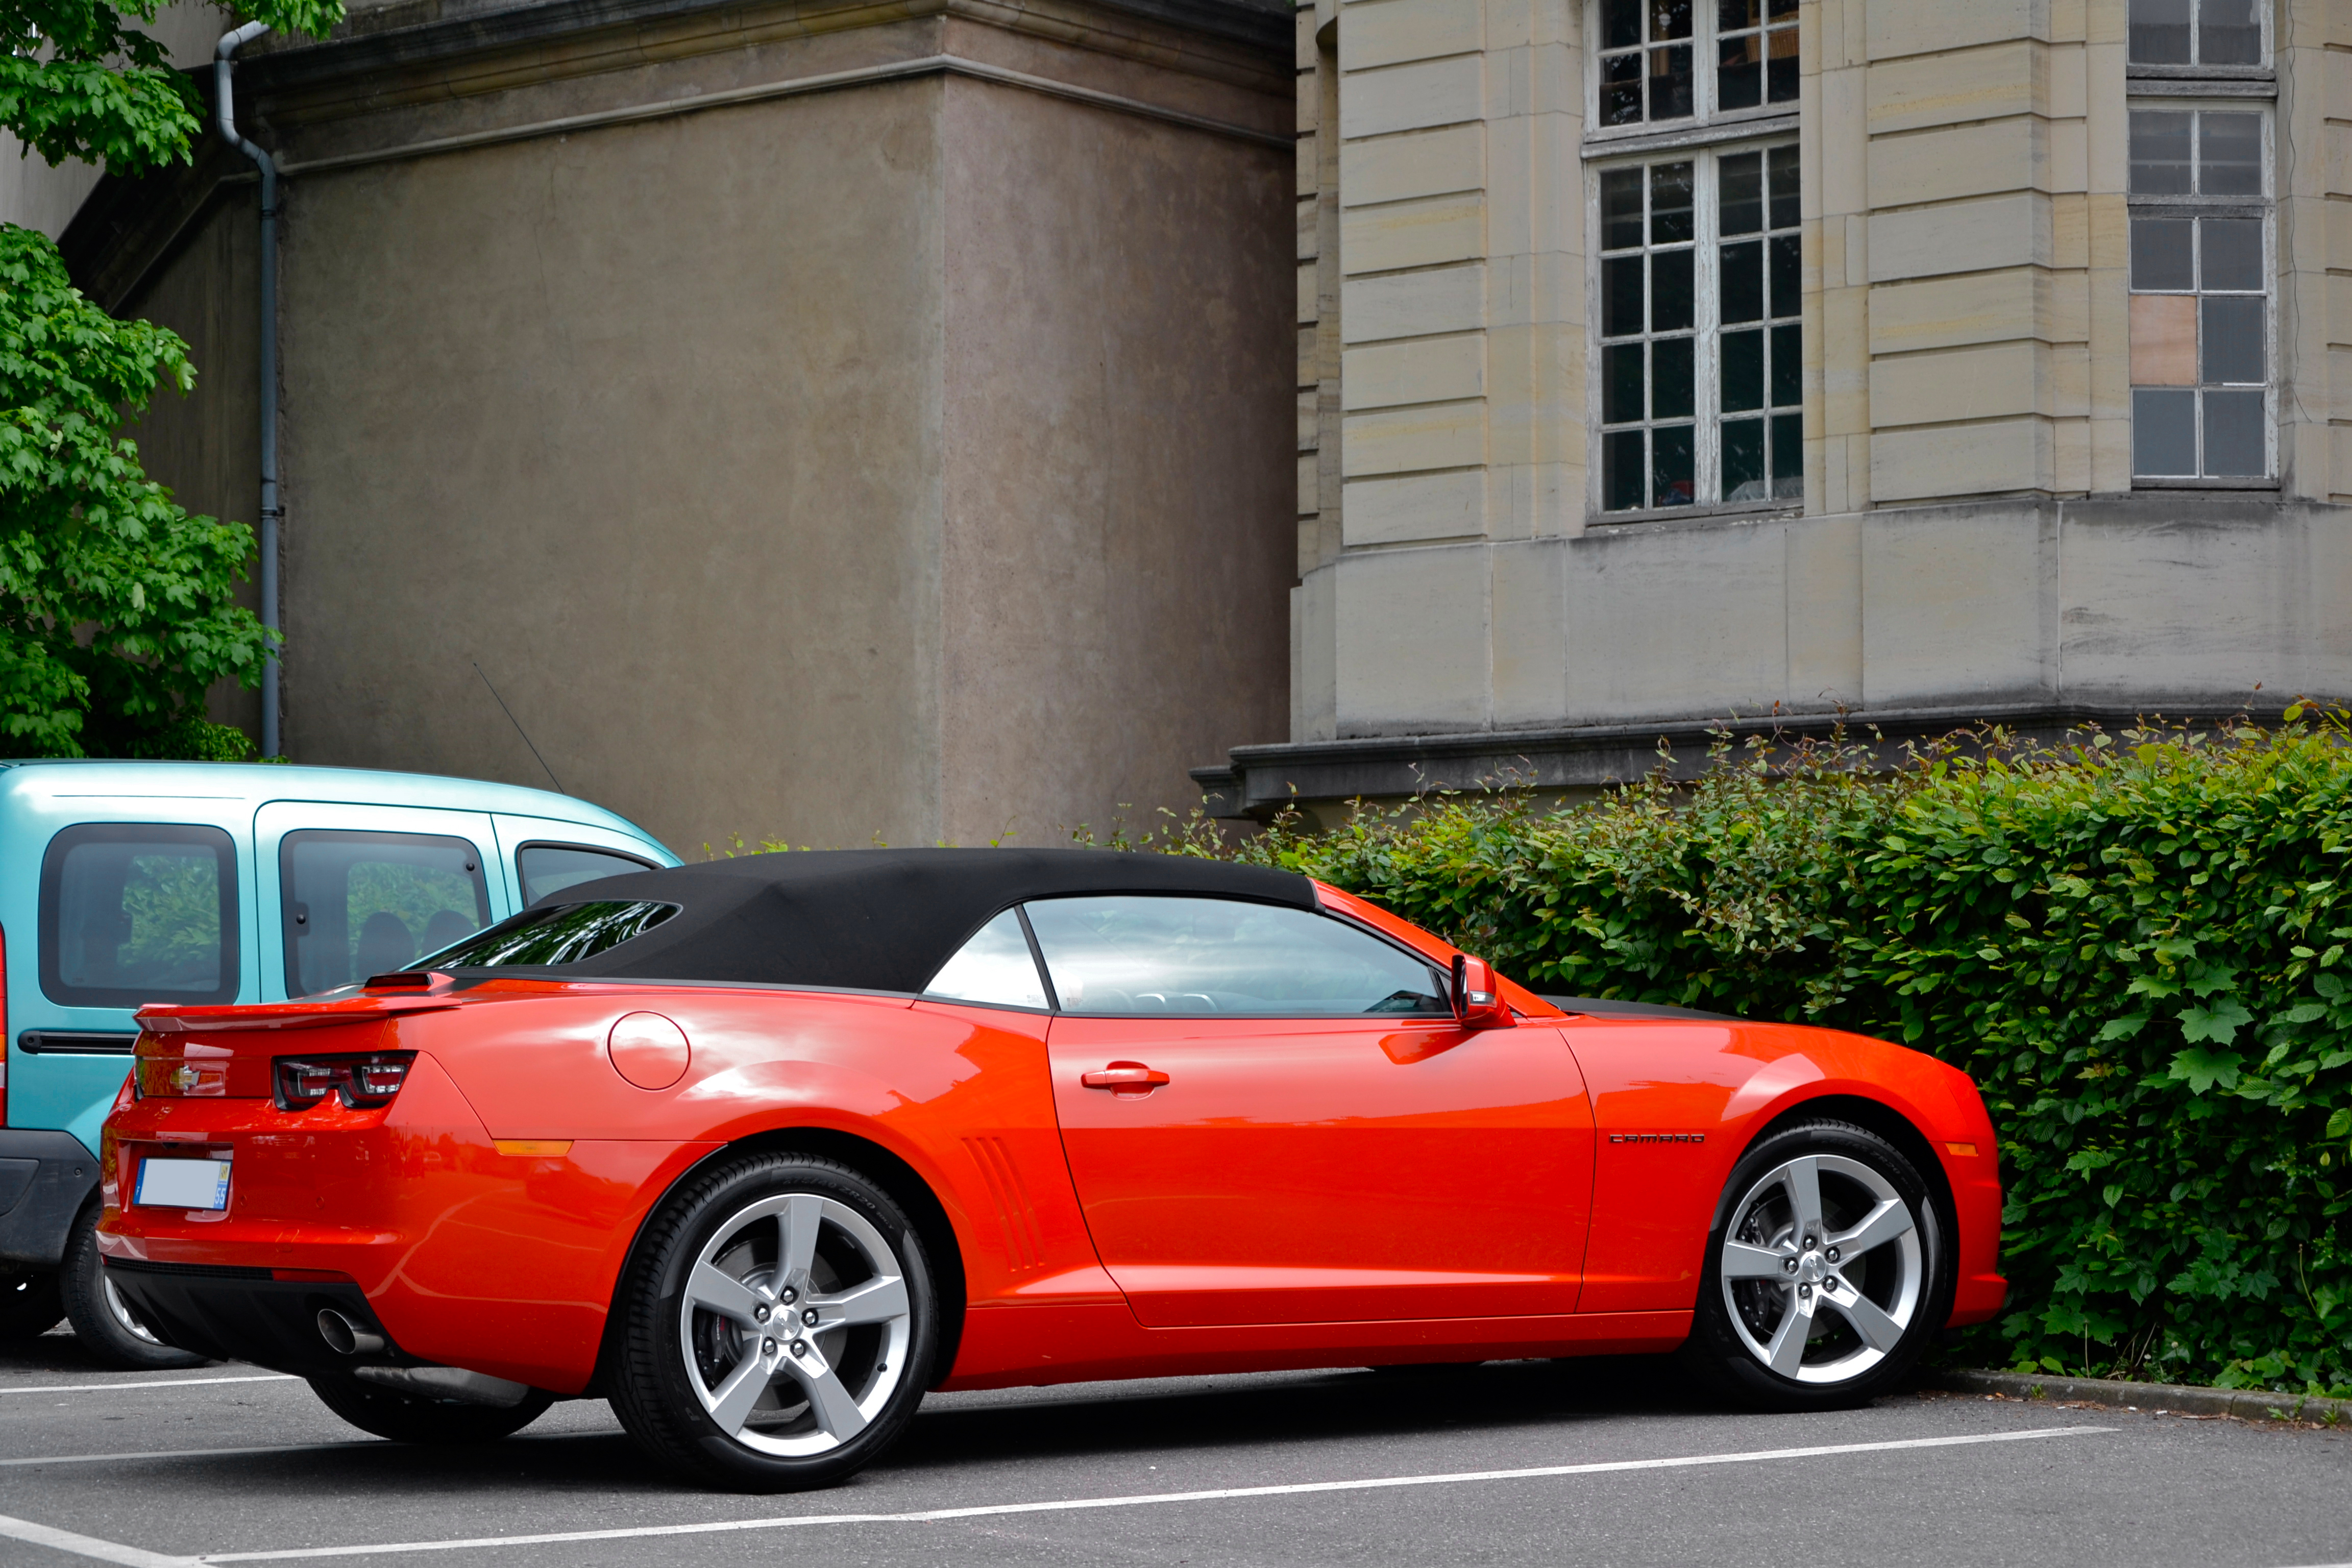 file chevrolet camaro ss convertible 7262977254 jpg wikimedia commons. Black Bedroom Furniture Sets. Home Design Ideas